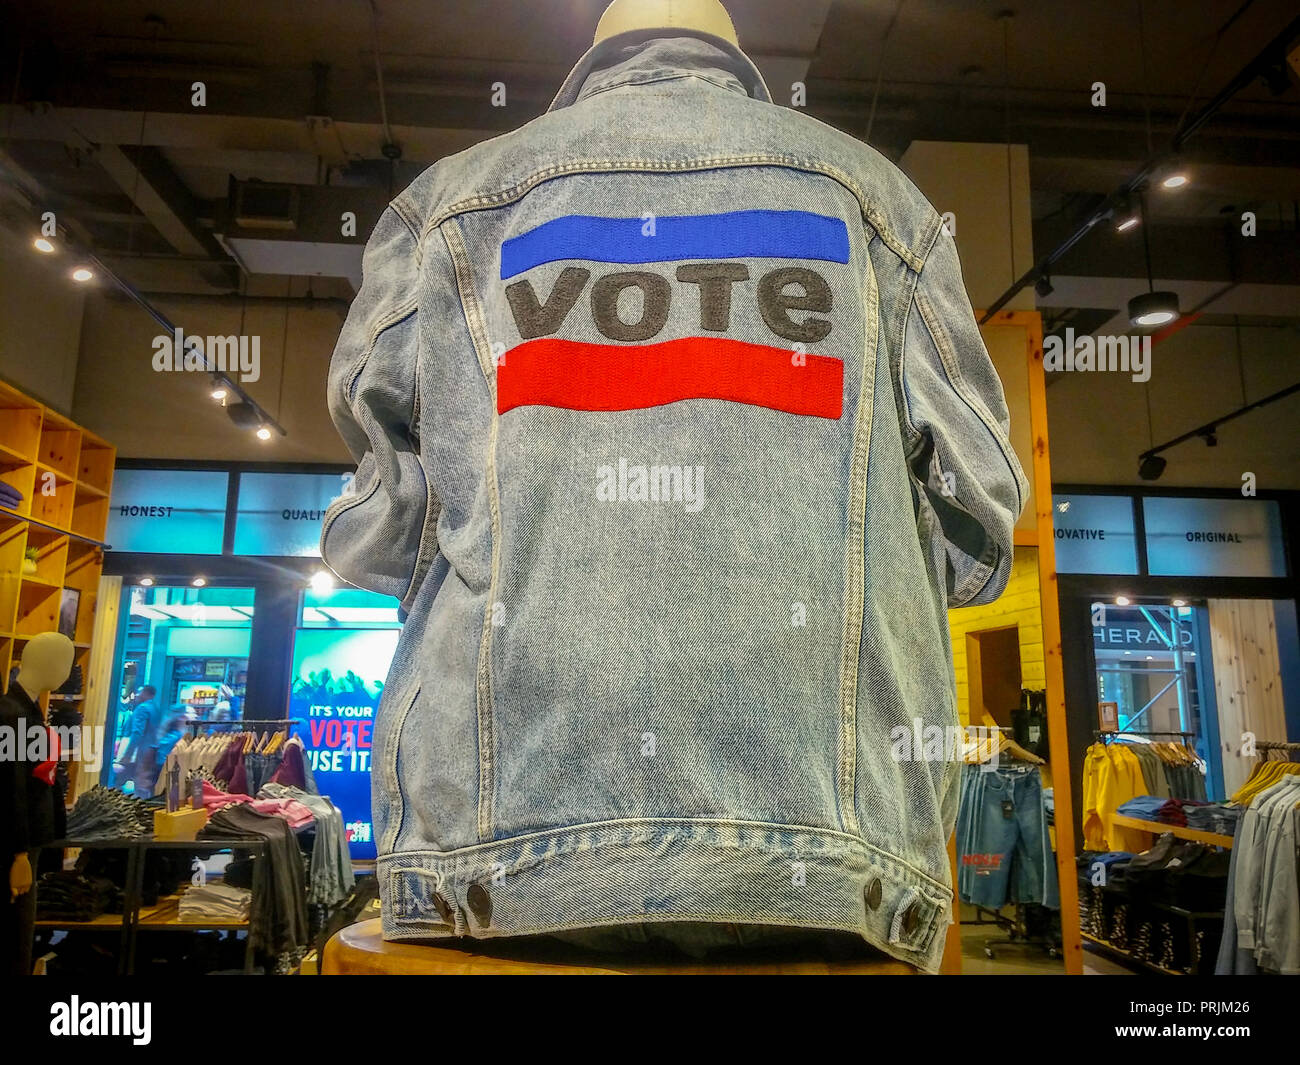 Merchandise encouraging people to register to vote and to exercise their franchise by voting is seen in a Levi Strauss & Co. store in New York on Monday, September 24, 2018. Levi's along with other major brands such as Patagonia, Walmart and Lyft are making a push to increase voter turnout in advance of the important midterm elections. The companies' 'Time To Vote' campaign is to counter low voter turnout and besides swaying the public they will offer time off for their employees to visit their polling locations. (© Richard B. Levine) - Stock Image